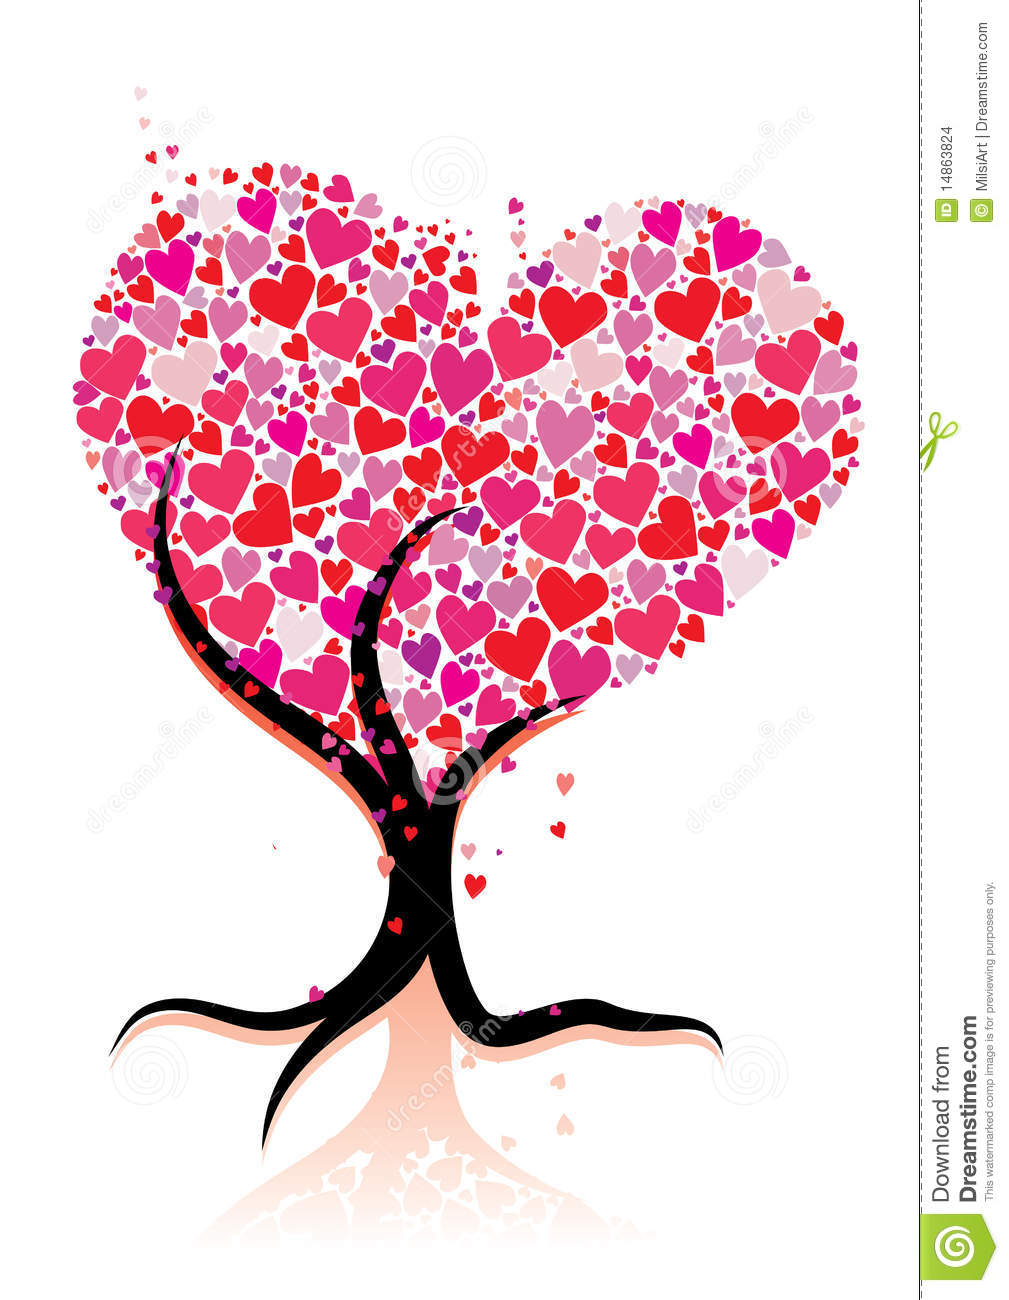 Love Tree Stock Images - Image: 14863824